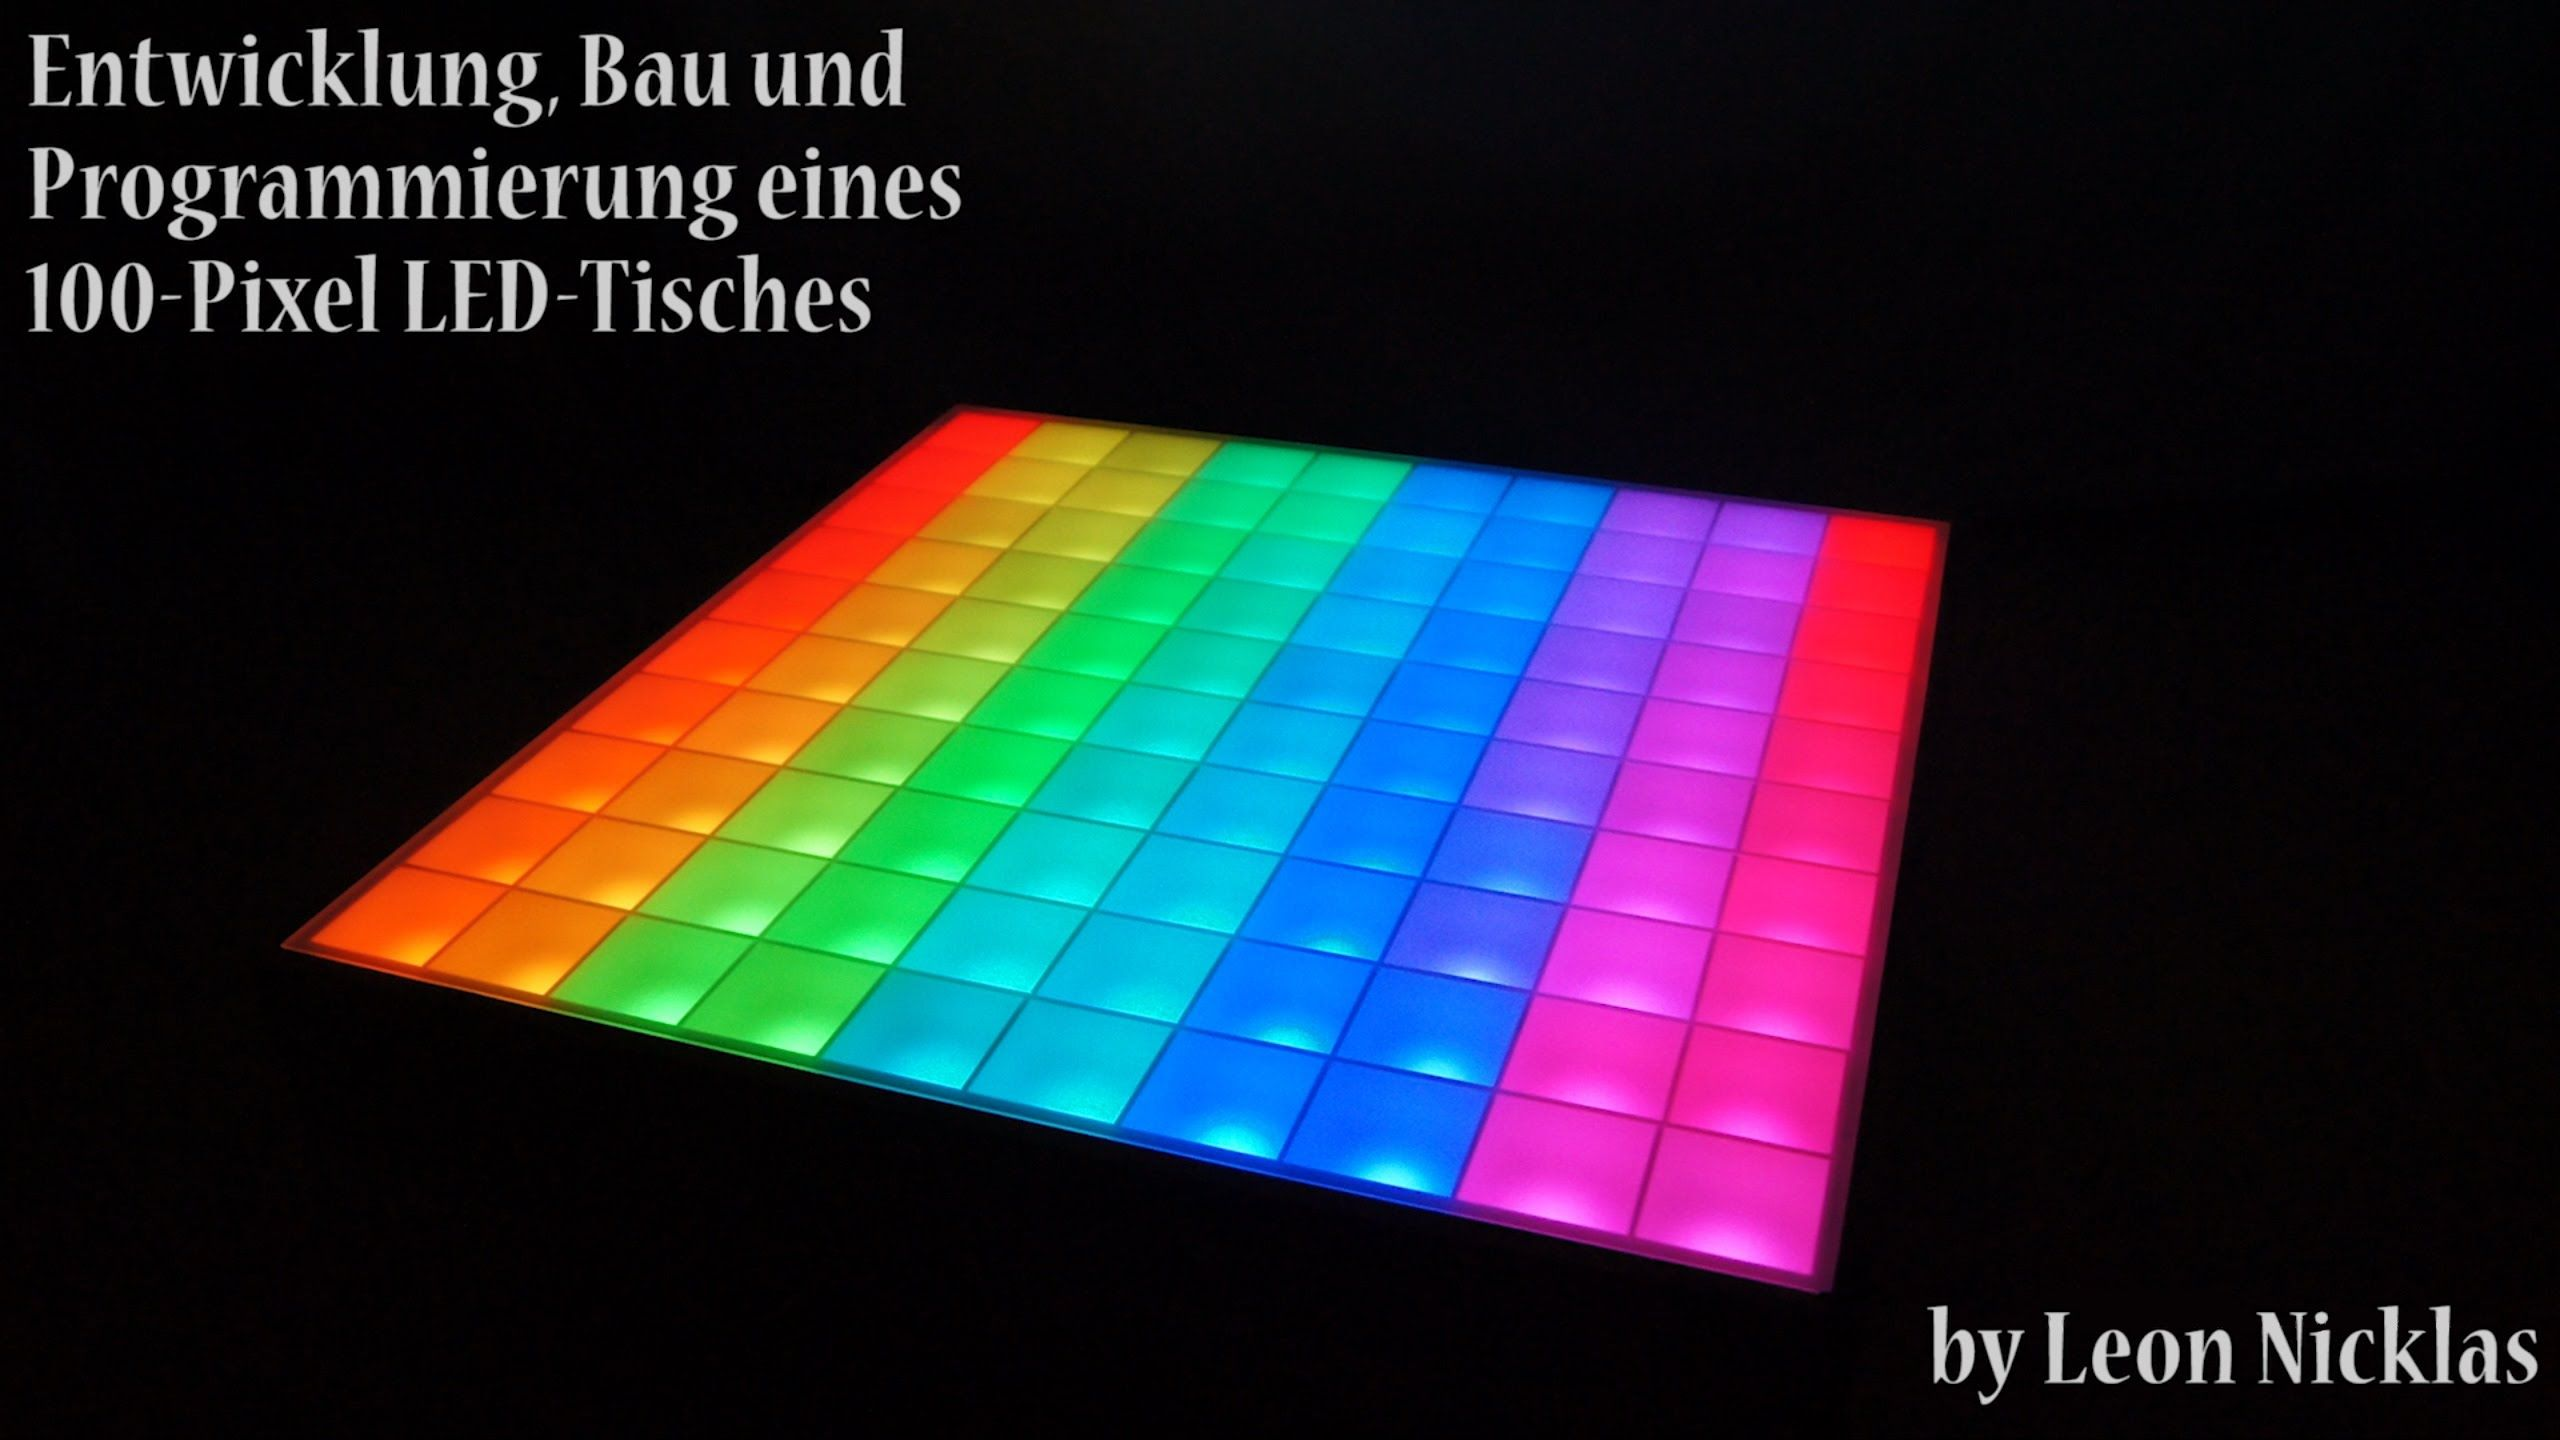 [Part1] Building An Interactive 100 Pixel WS2812 RGB LED Table (Tisch)